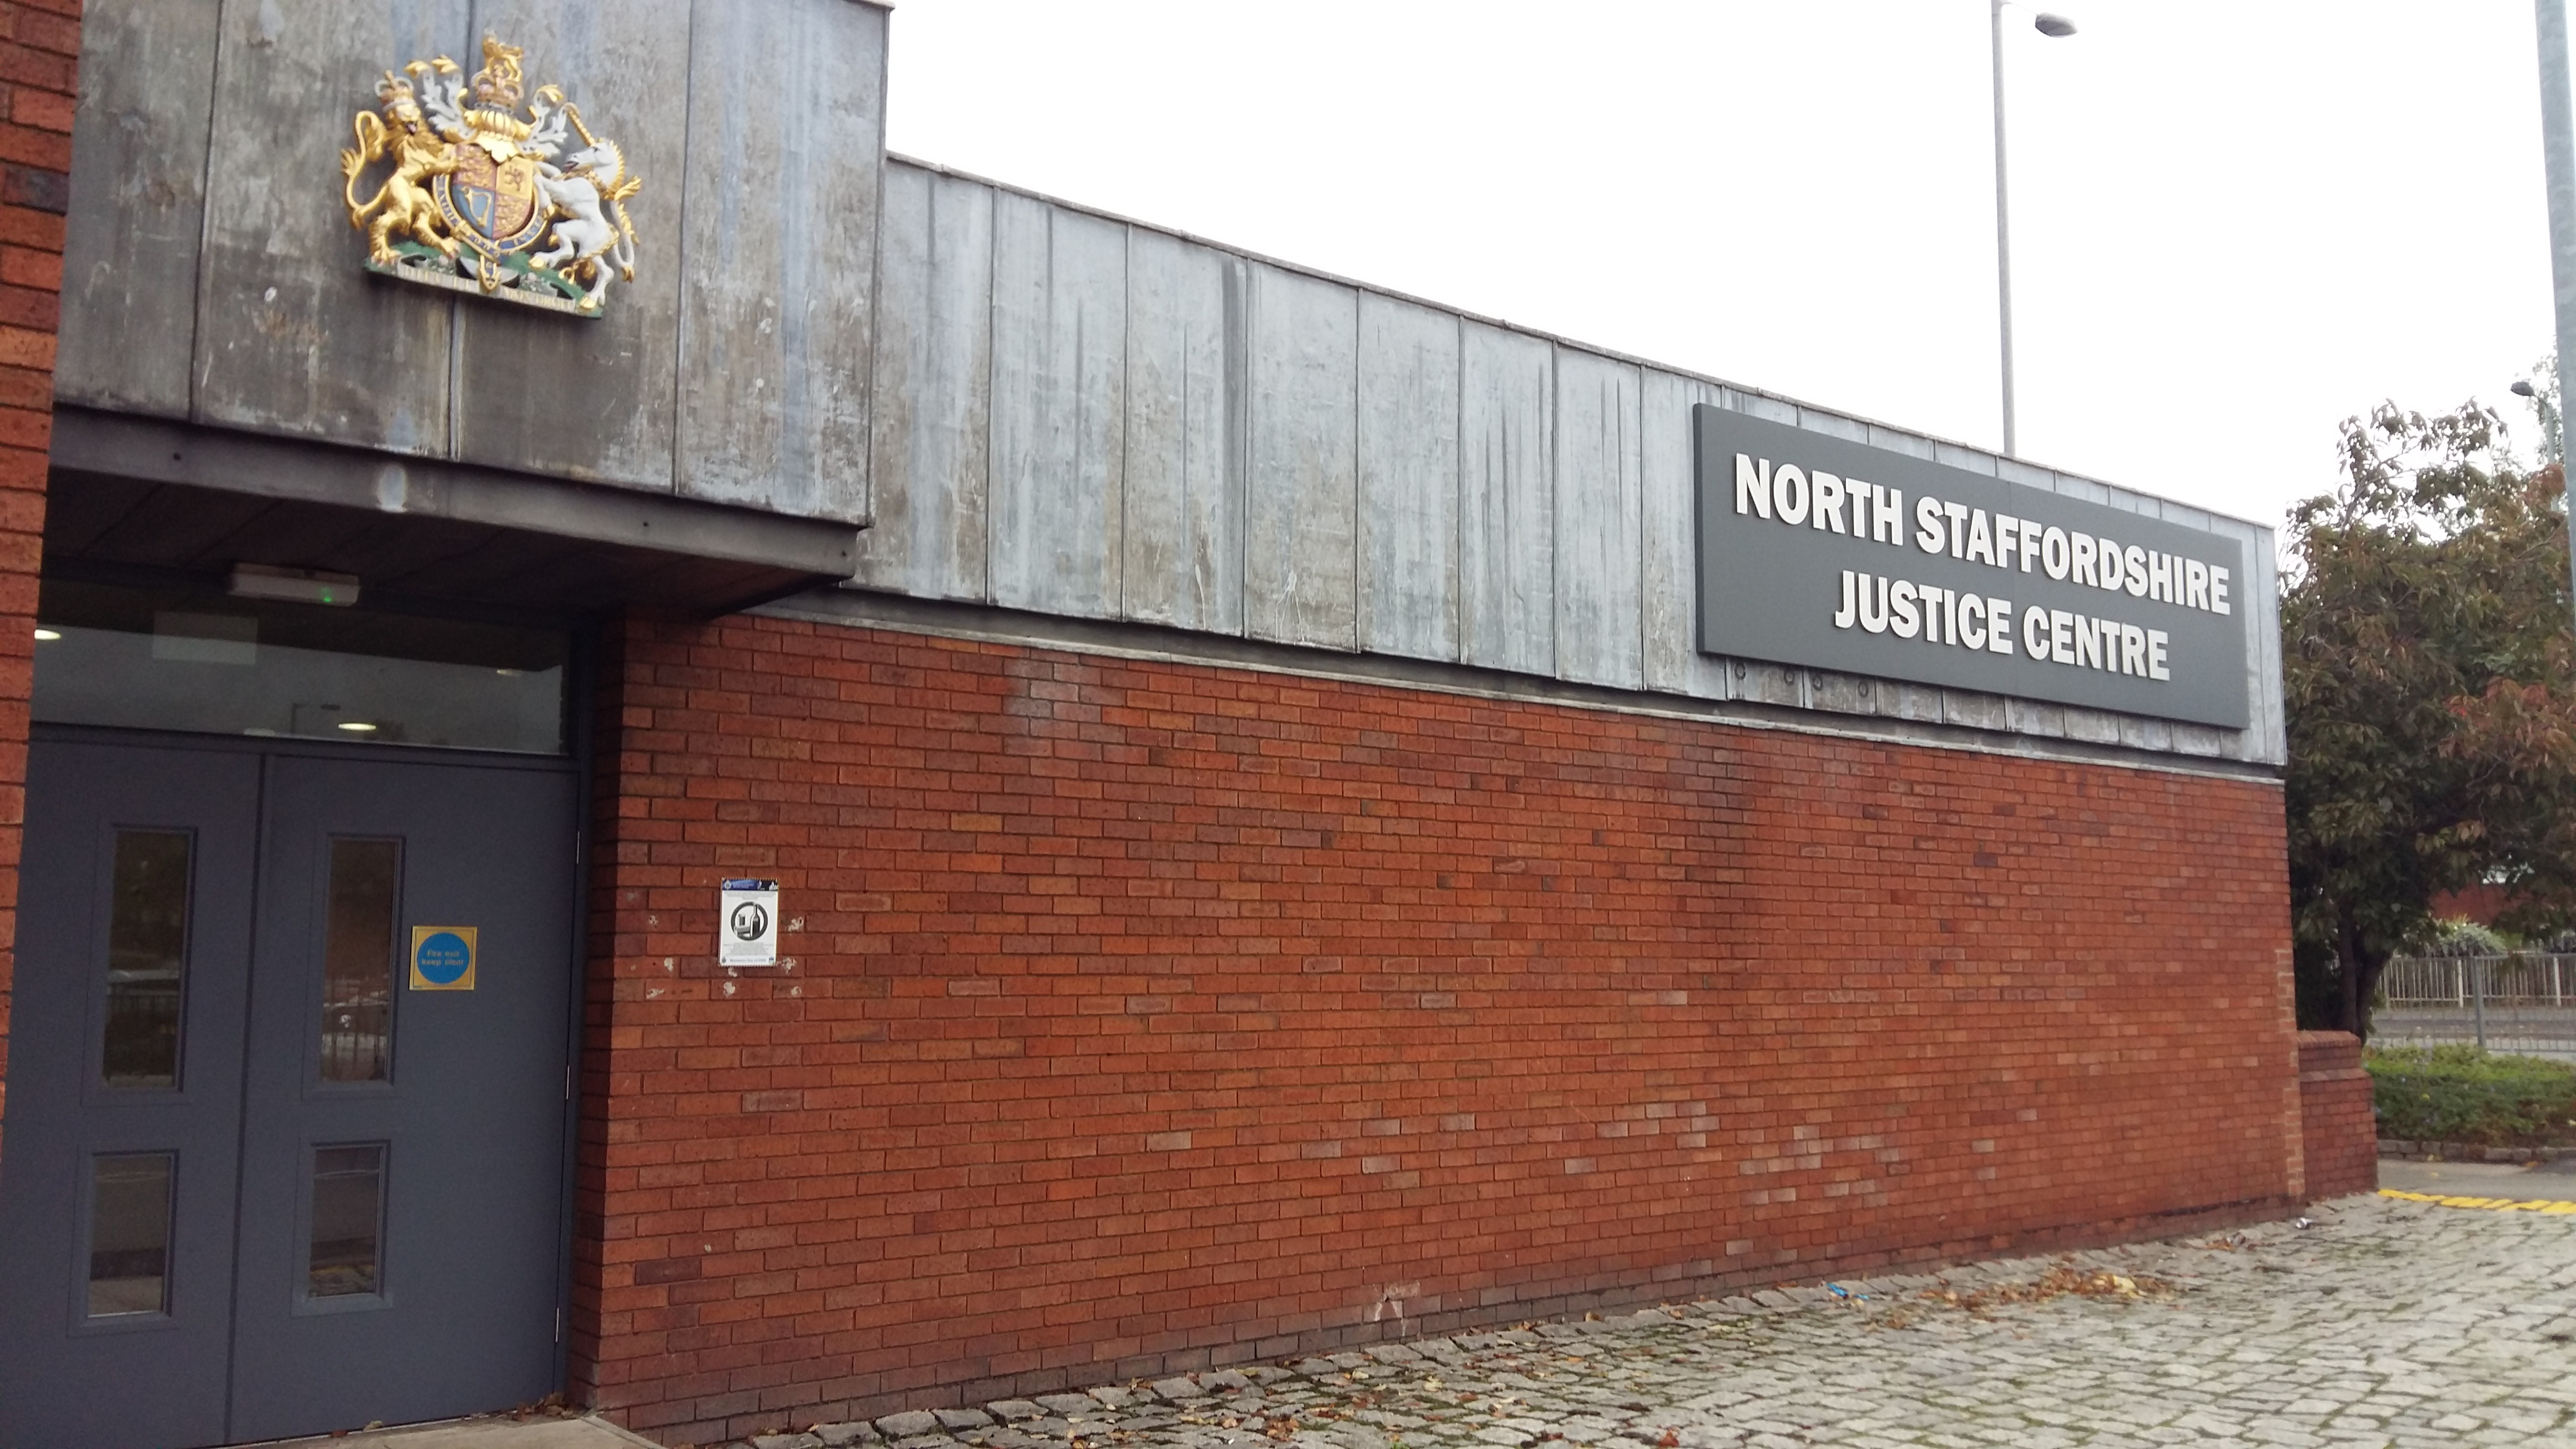 north-staffordshire-justice-centre-magistrates-court.jpg